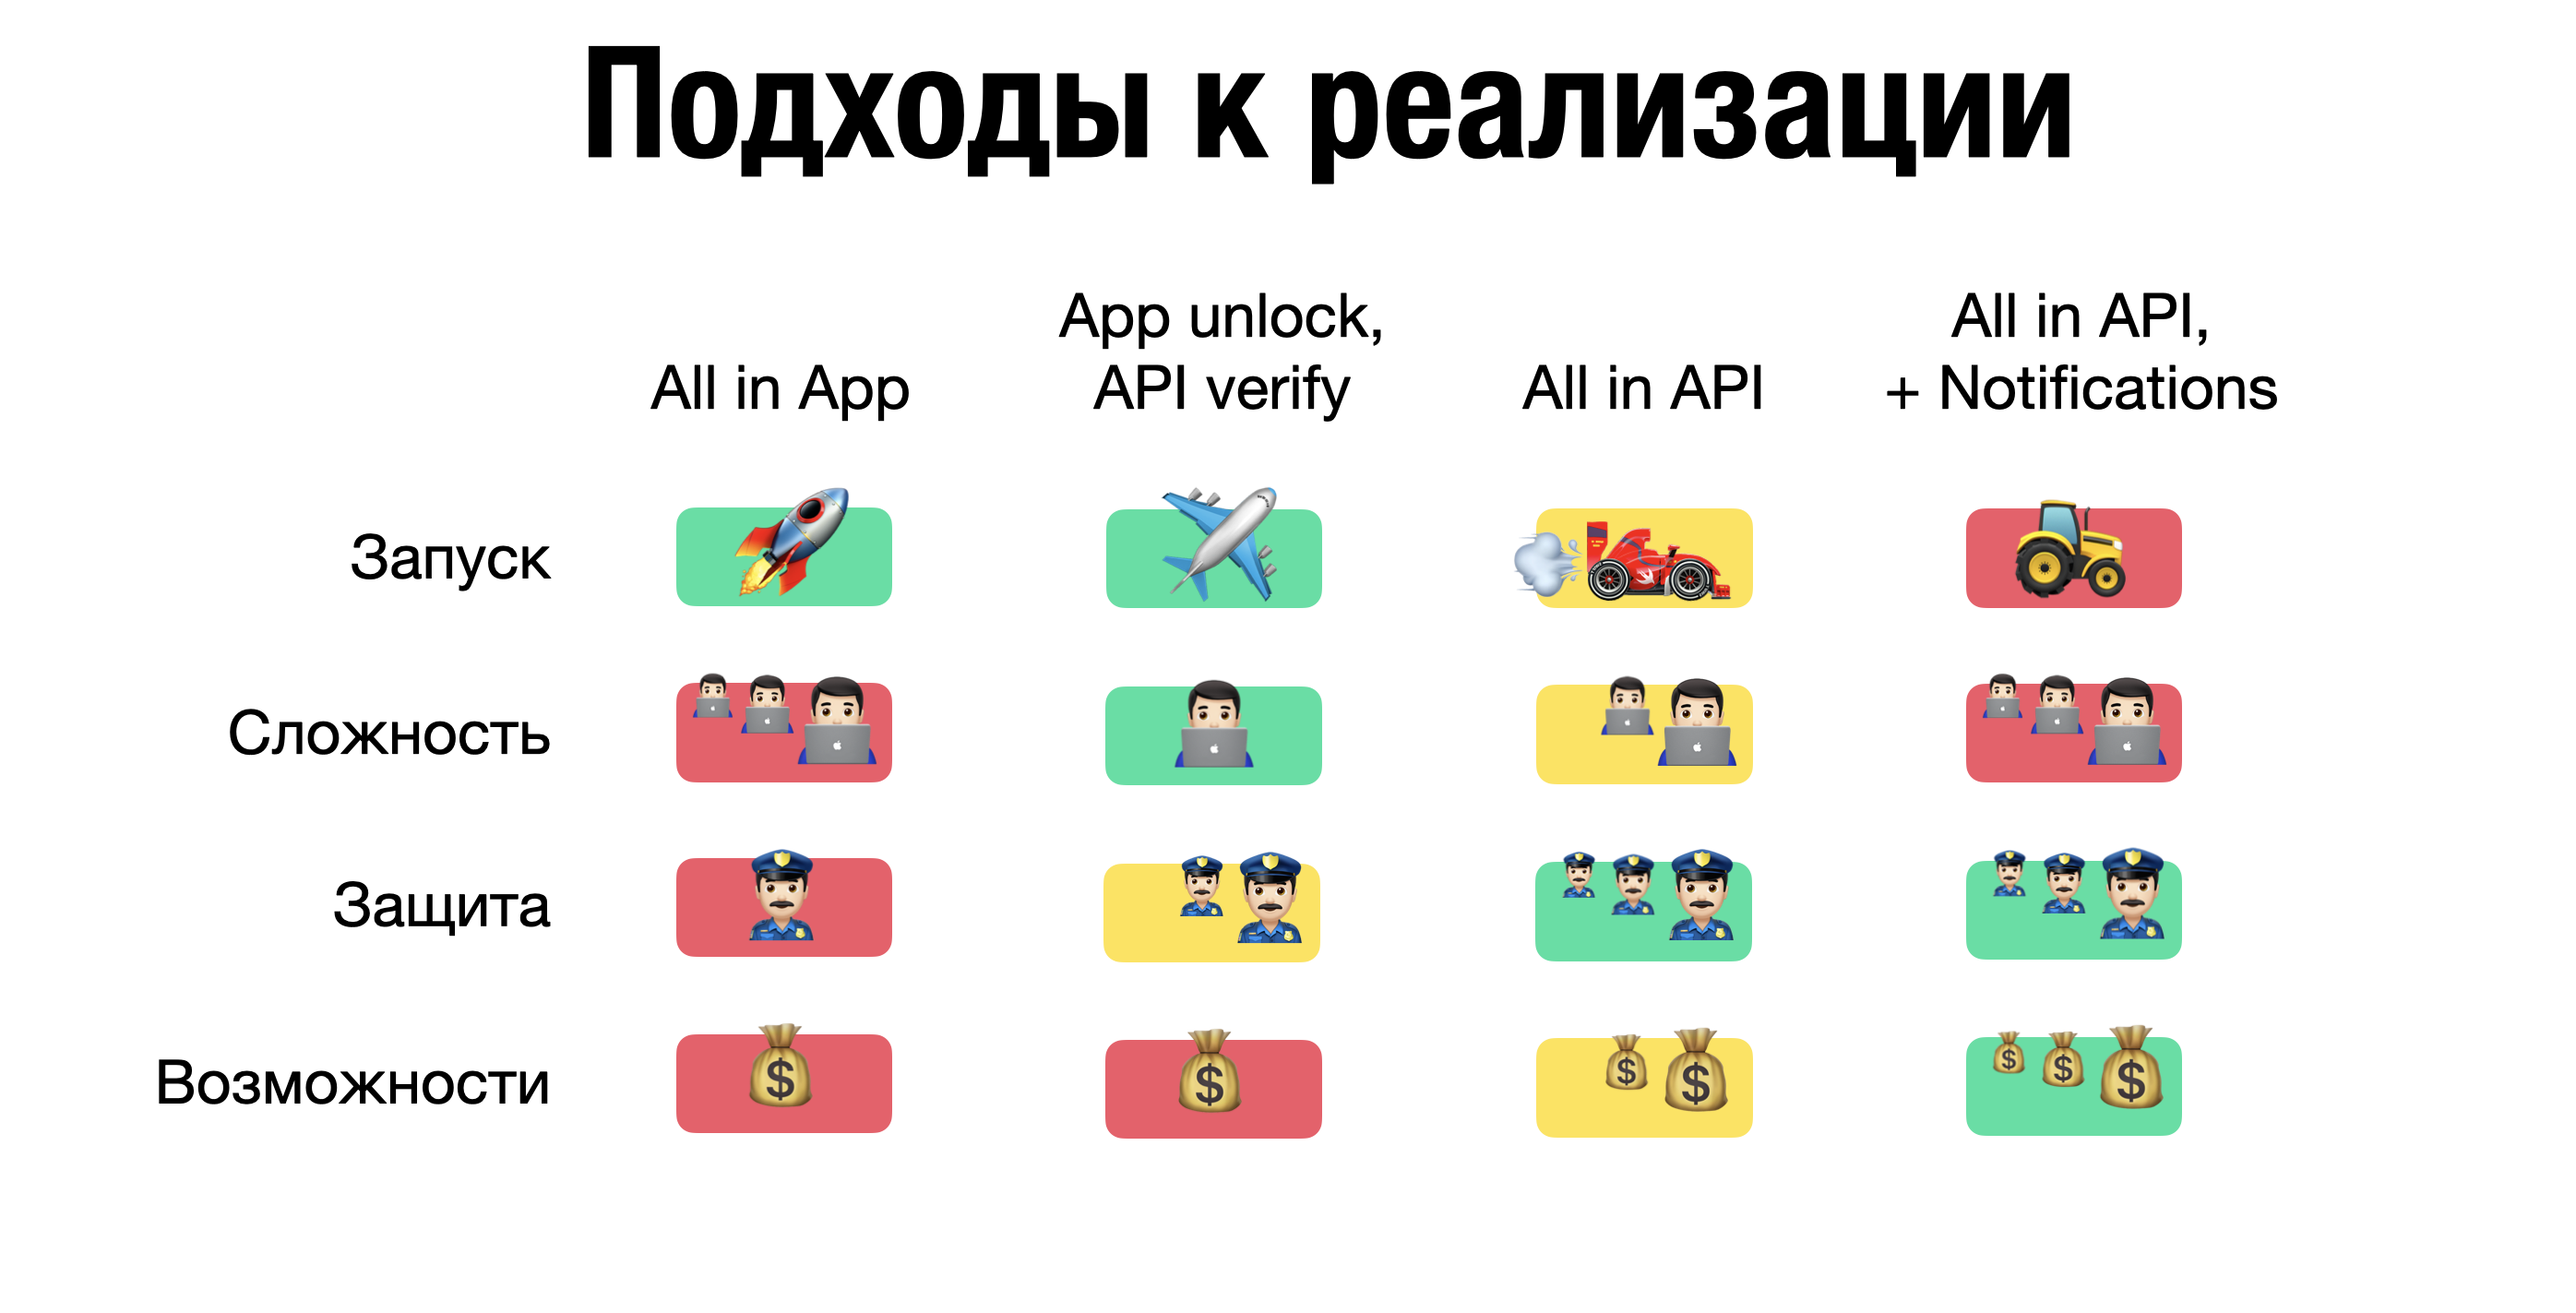 Quality pipelines в мобильной разработке, часть 1: android / блог компании jug ru group / хабр